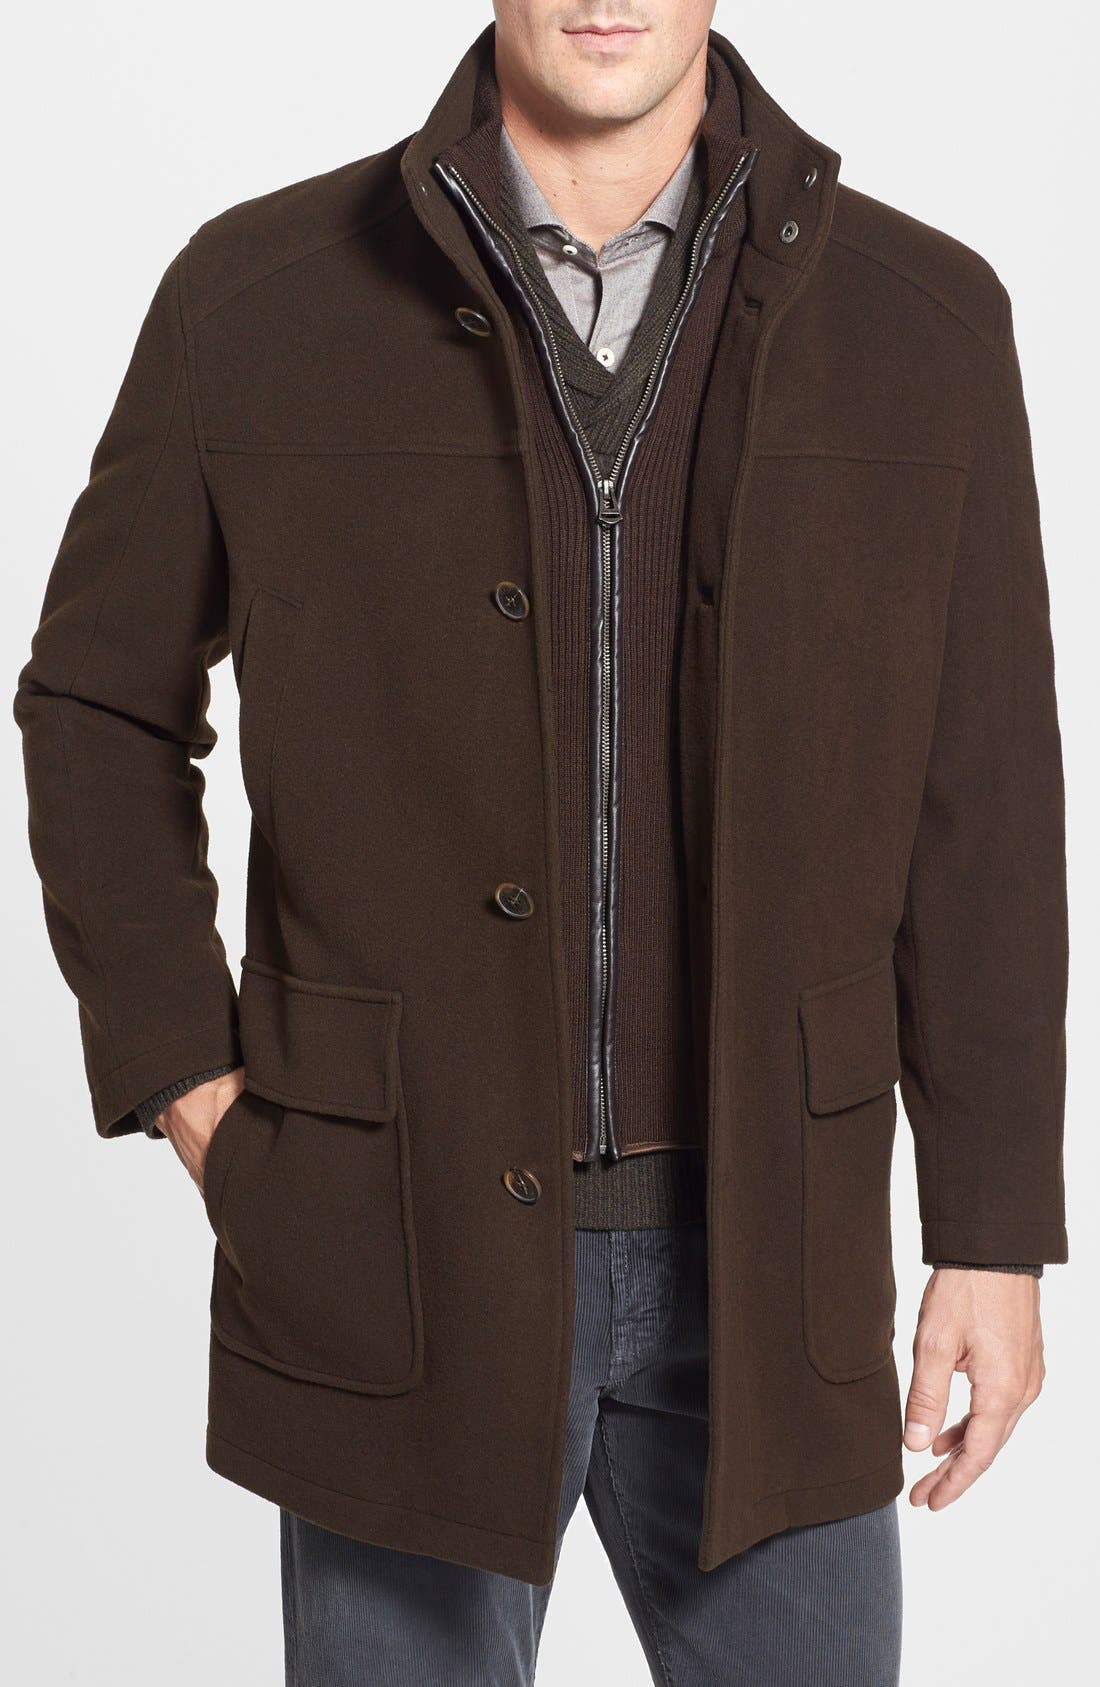 Alternate Image 1 Selected - Cole Haan Wool Blend Topcoat with Inset Bib